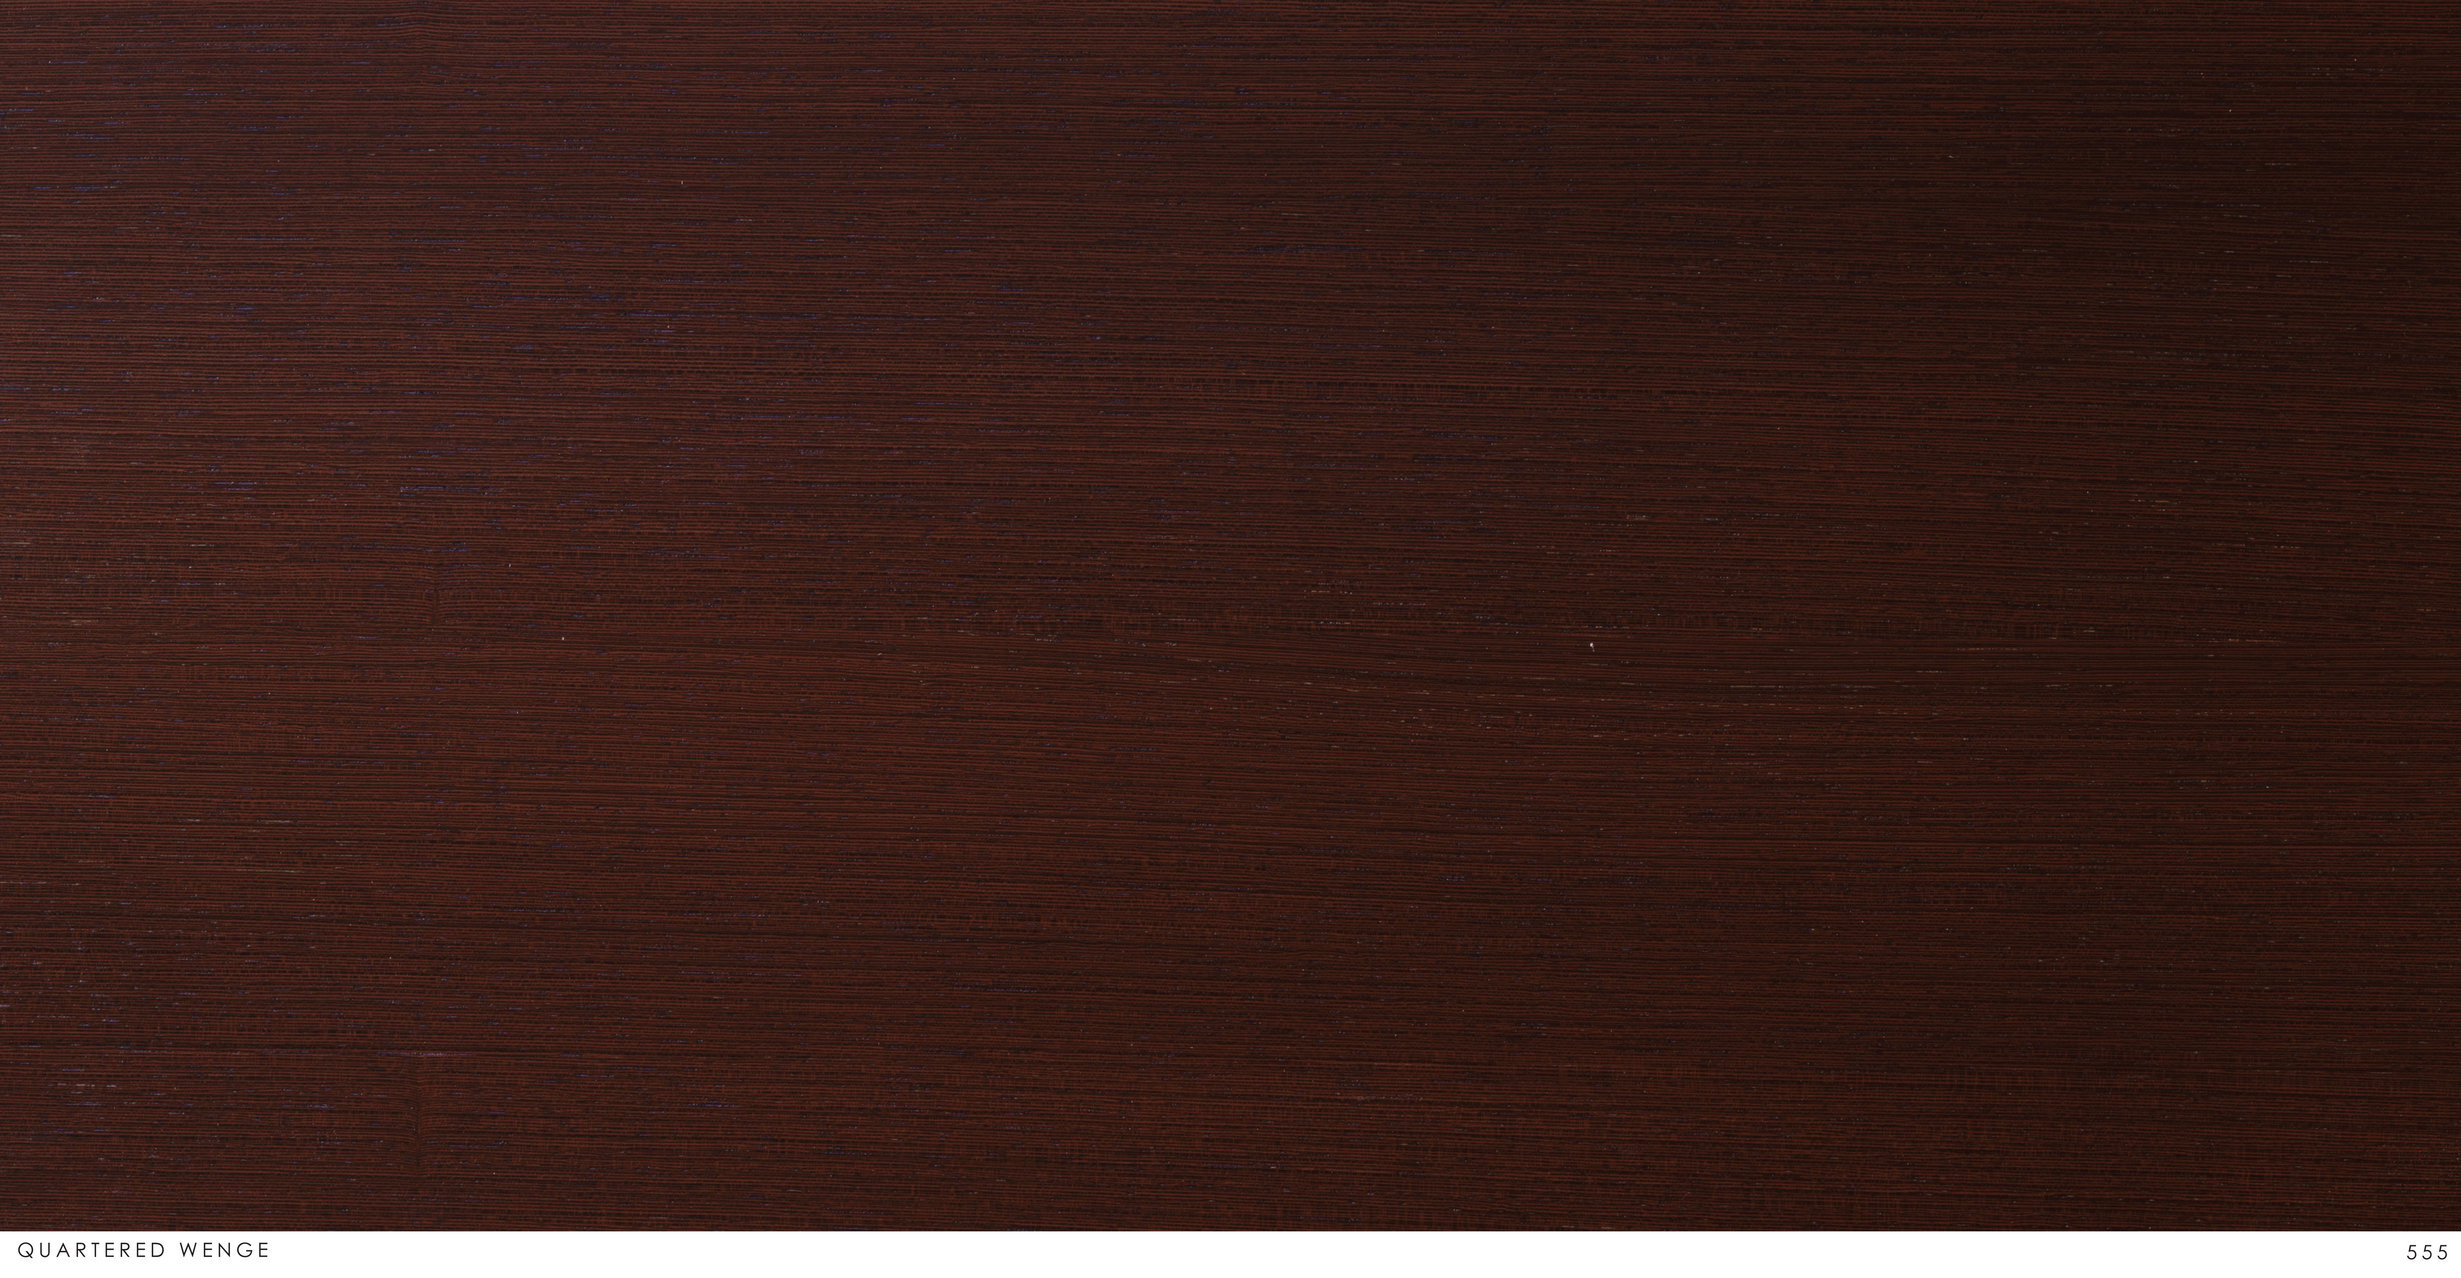 QUARTERED WENGE 555.jpg